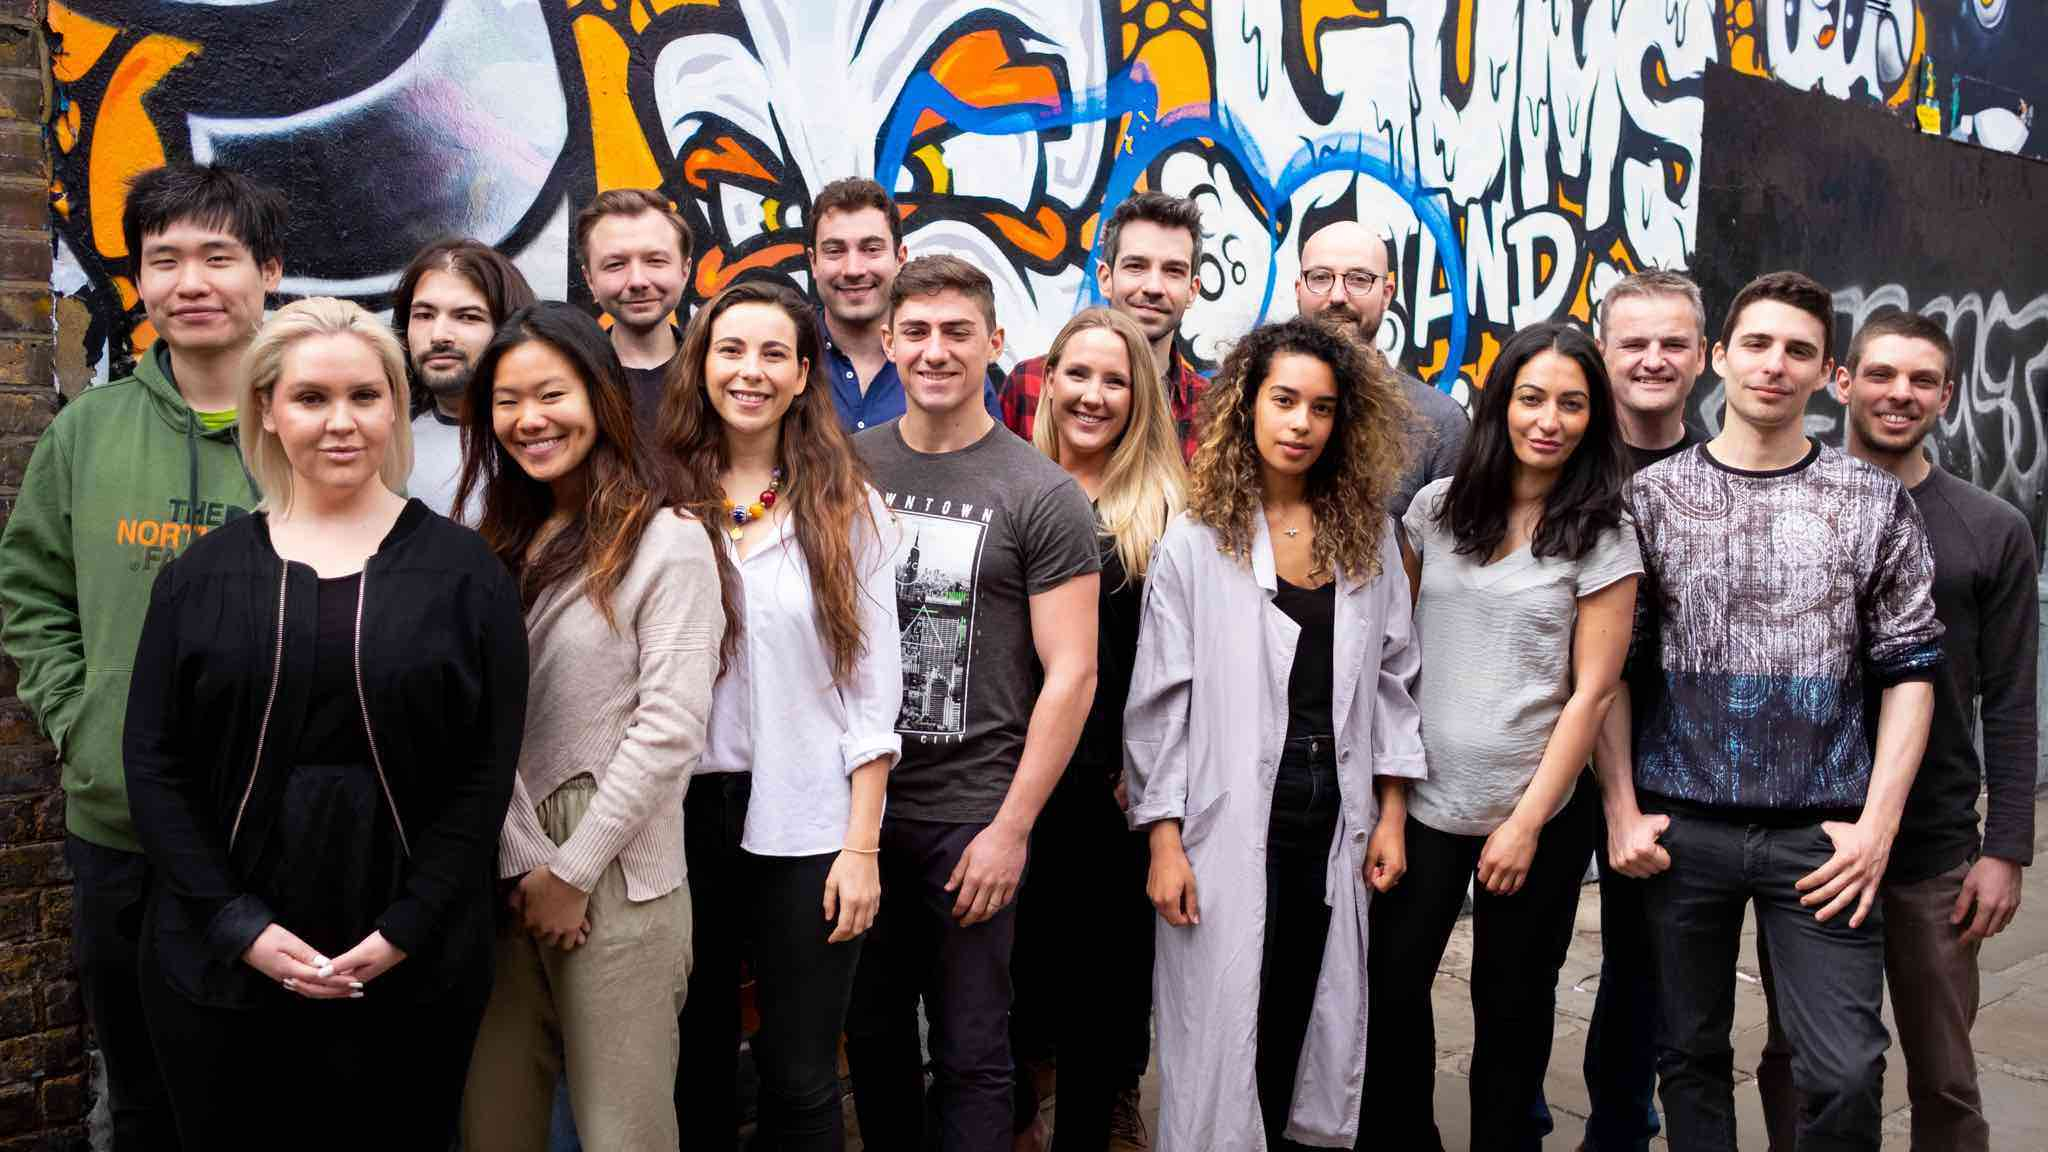 Headstart secures £5.42 million Pre-Series A investment led by FoundersX